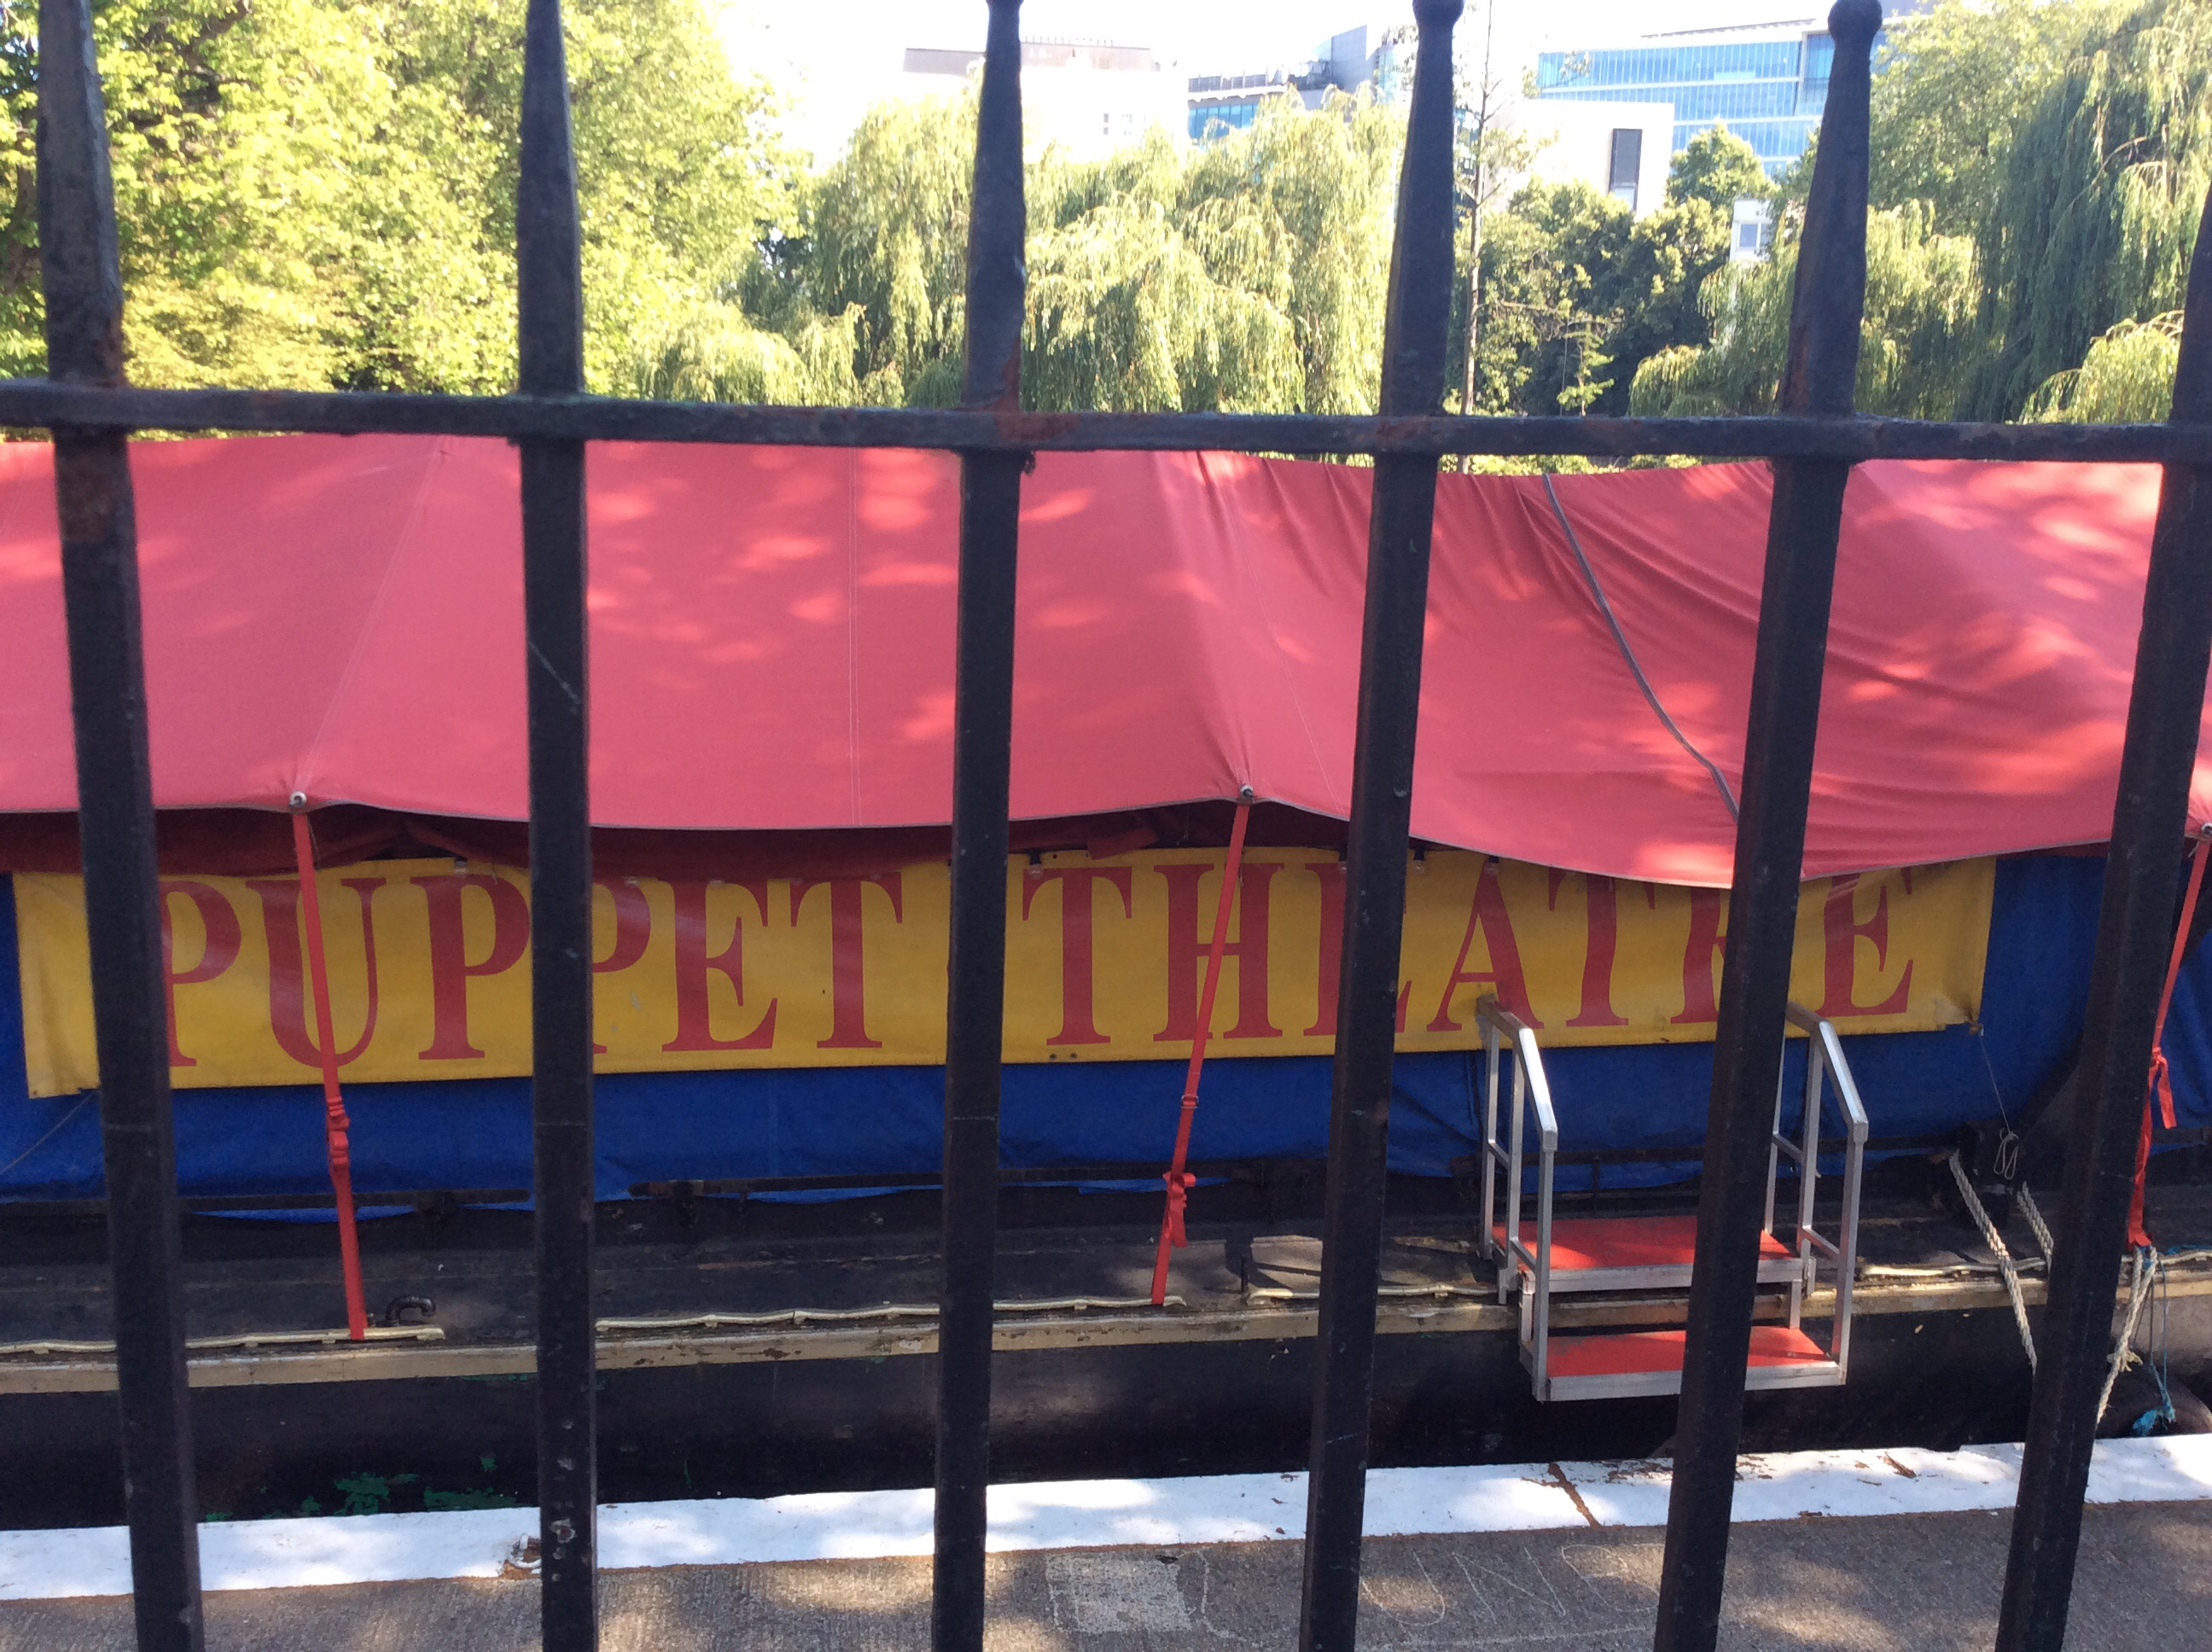 Puppet Theatre on canal